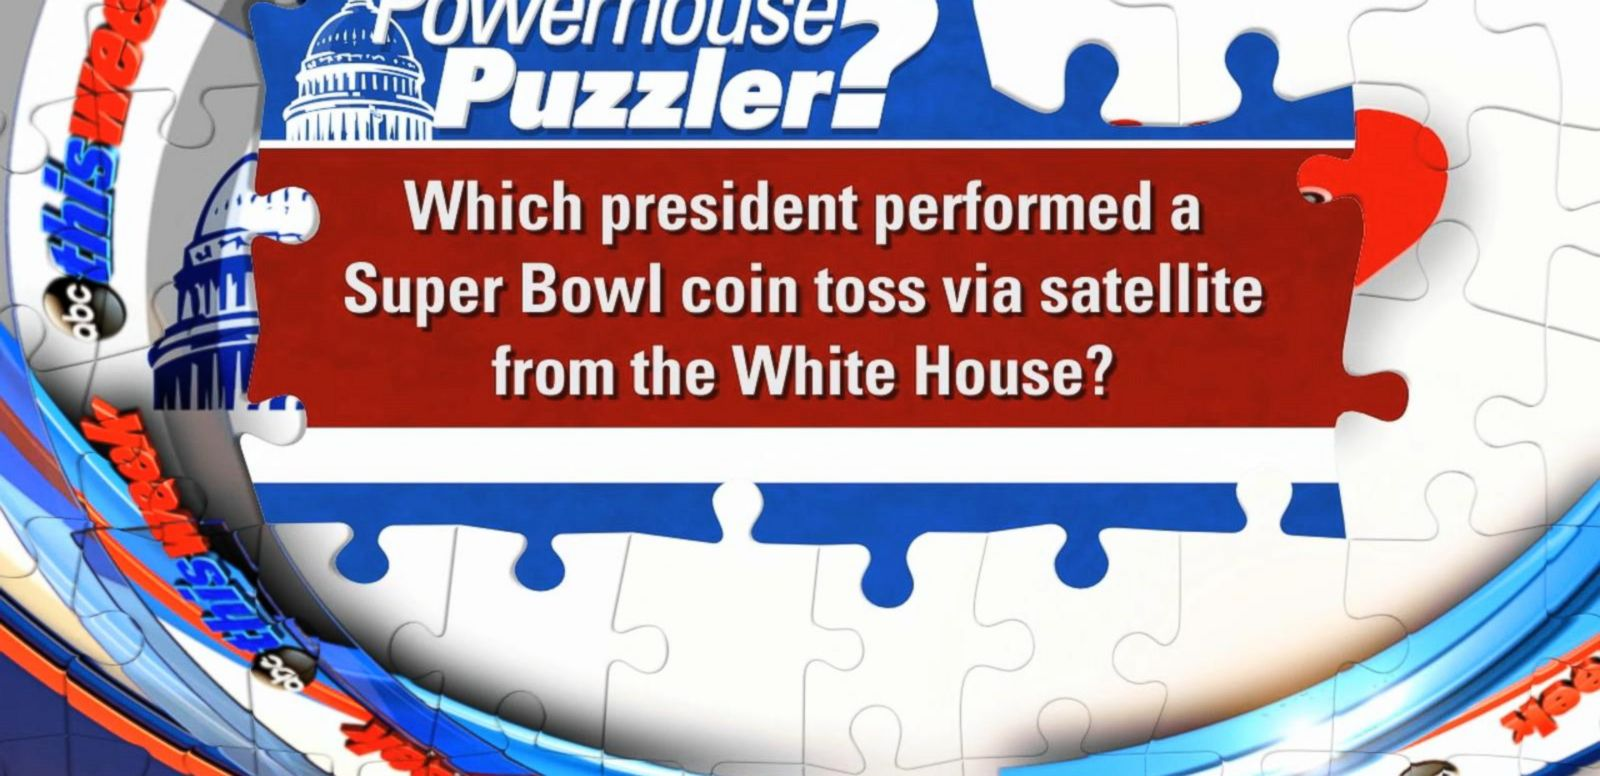 VIDEO: 'This Week' Powerhouse Puzzler